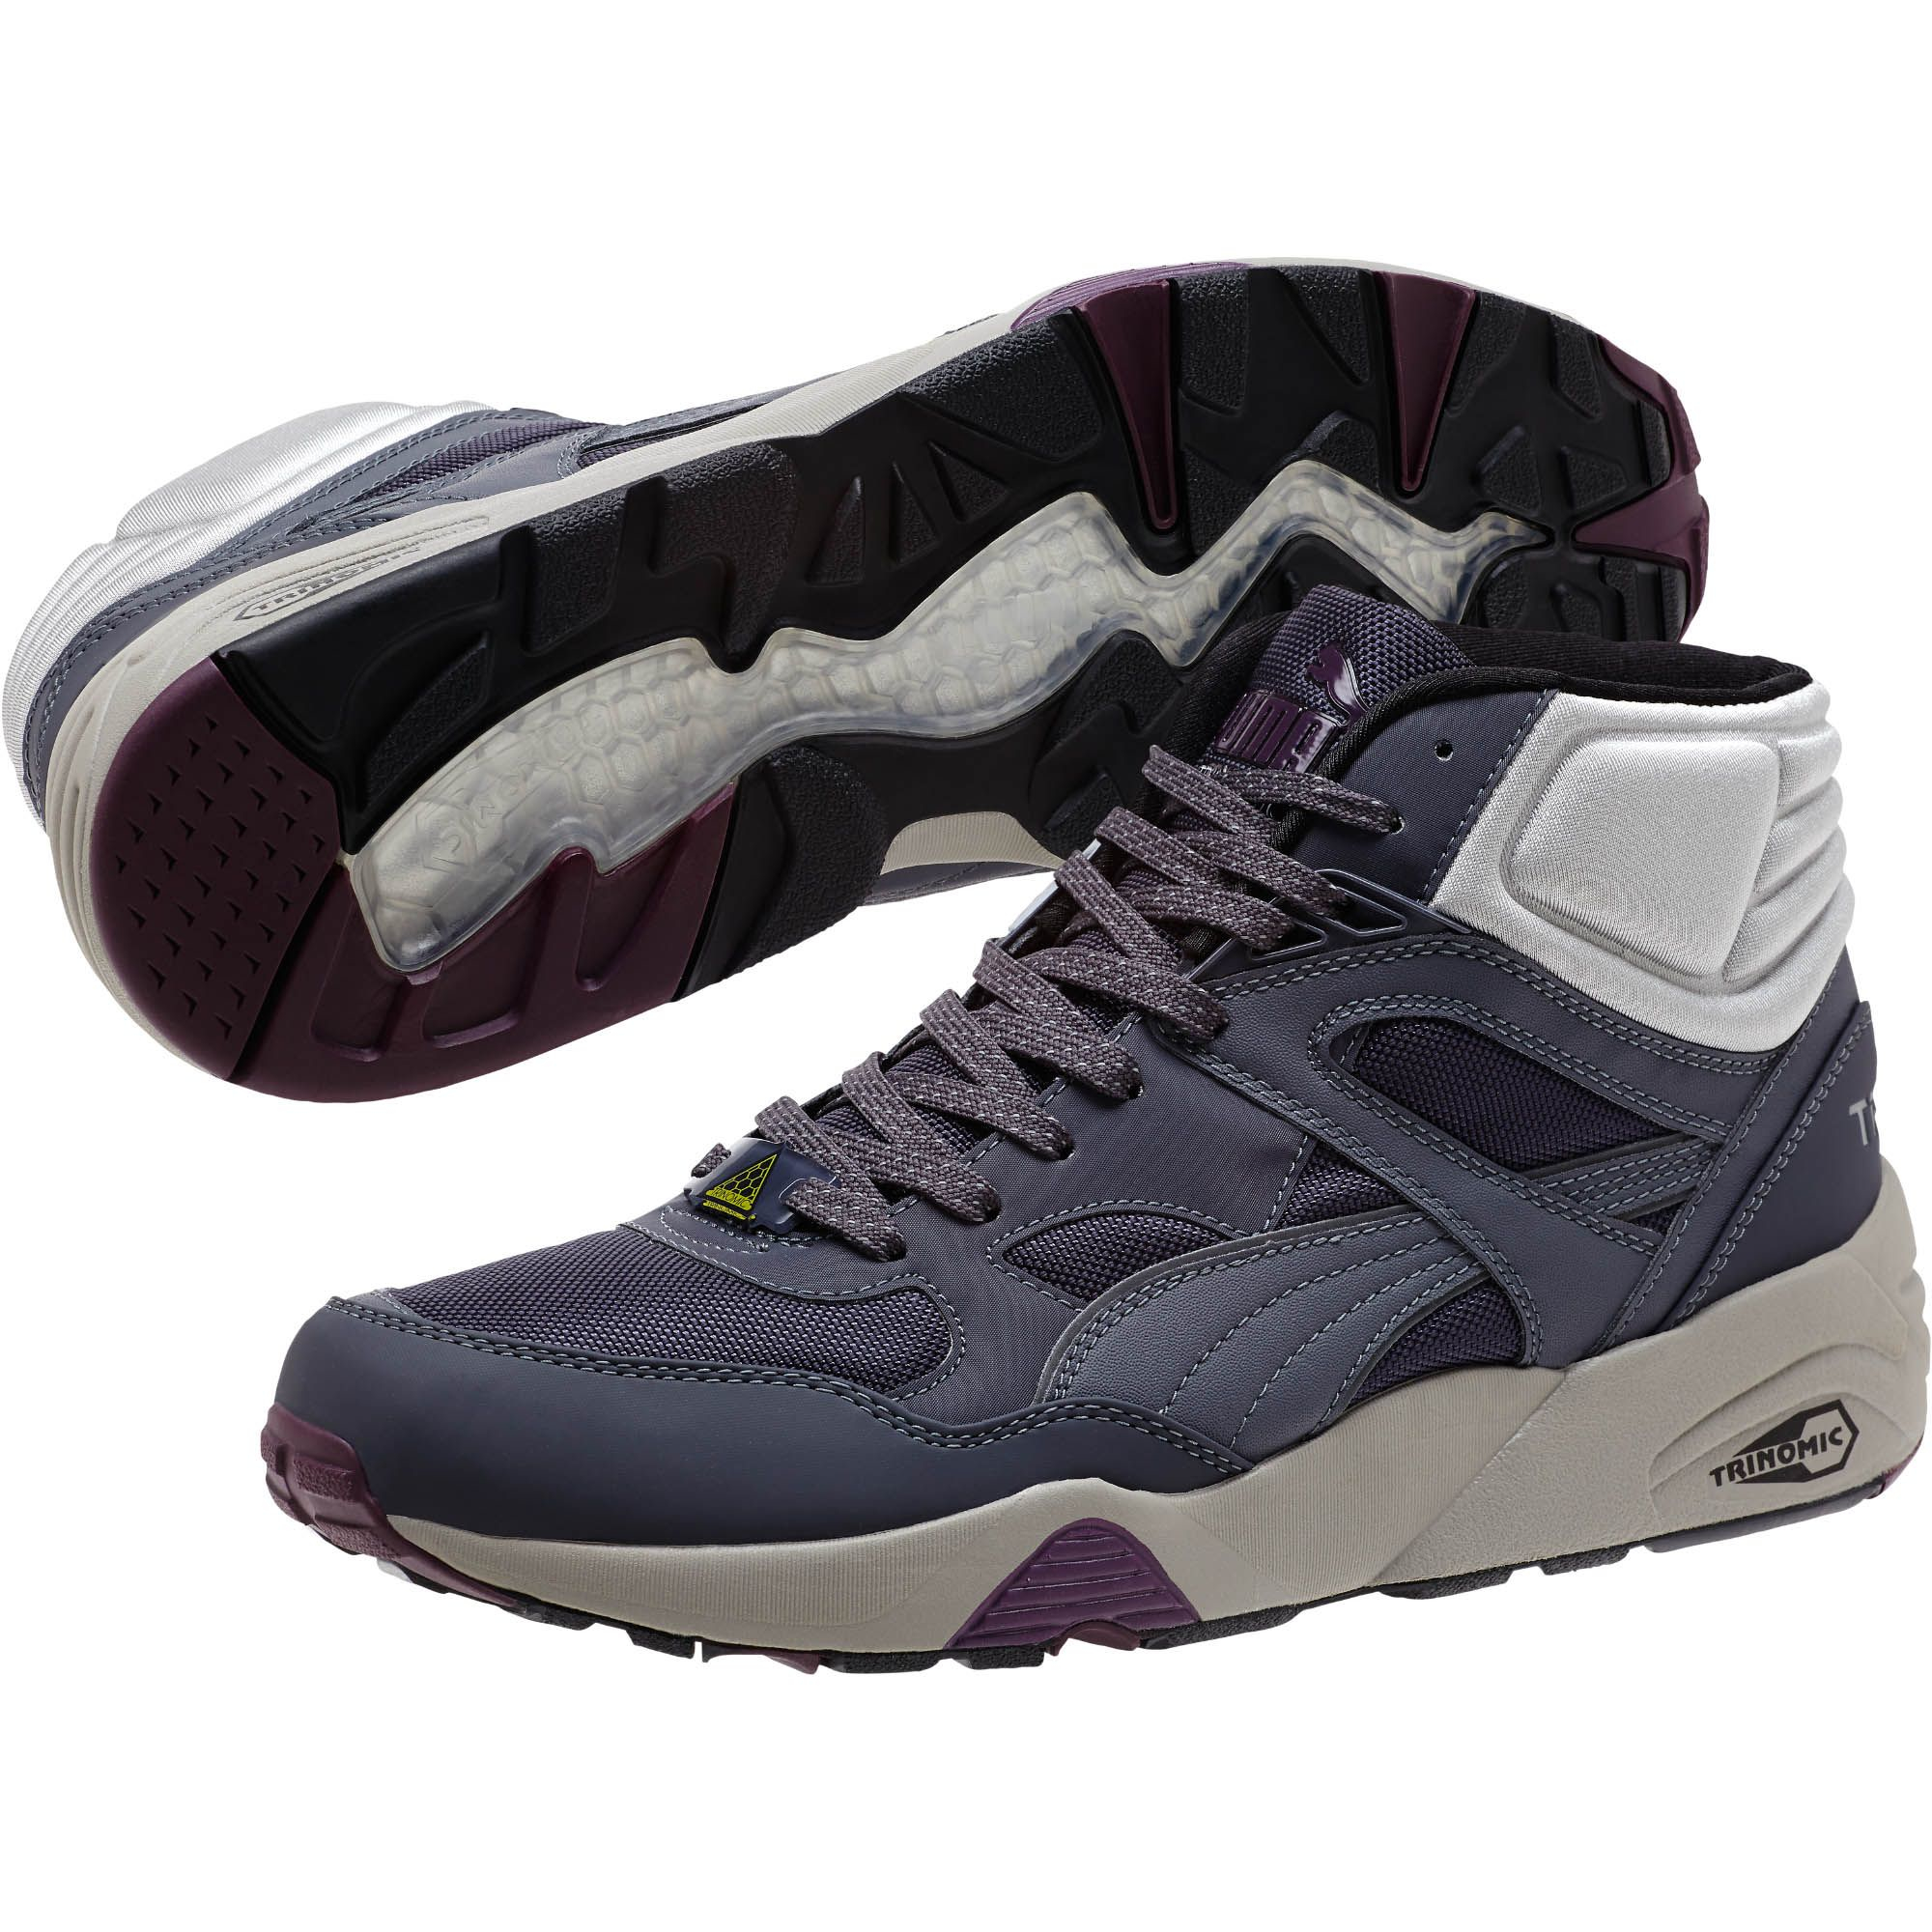 1dbd0af3e97832 Lyst - PUMA R698 Winter Mid Men s Sneakers in Gray for Men